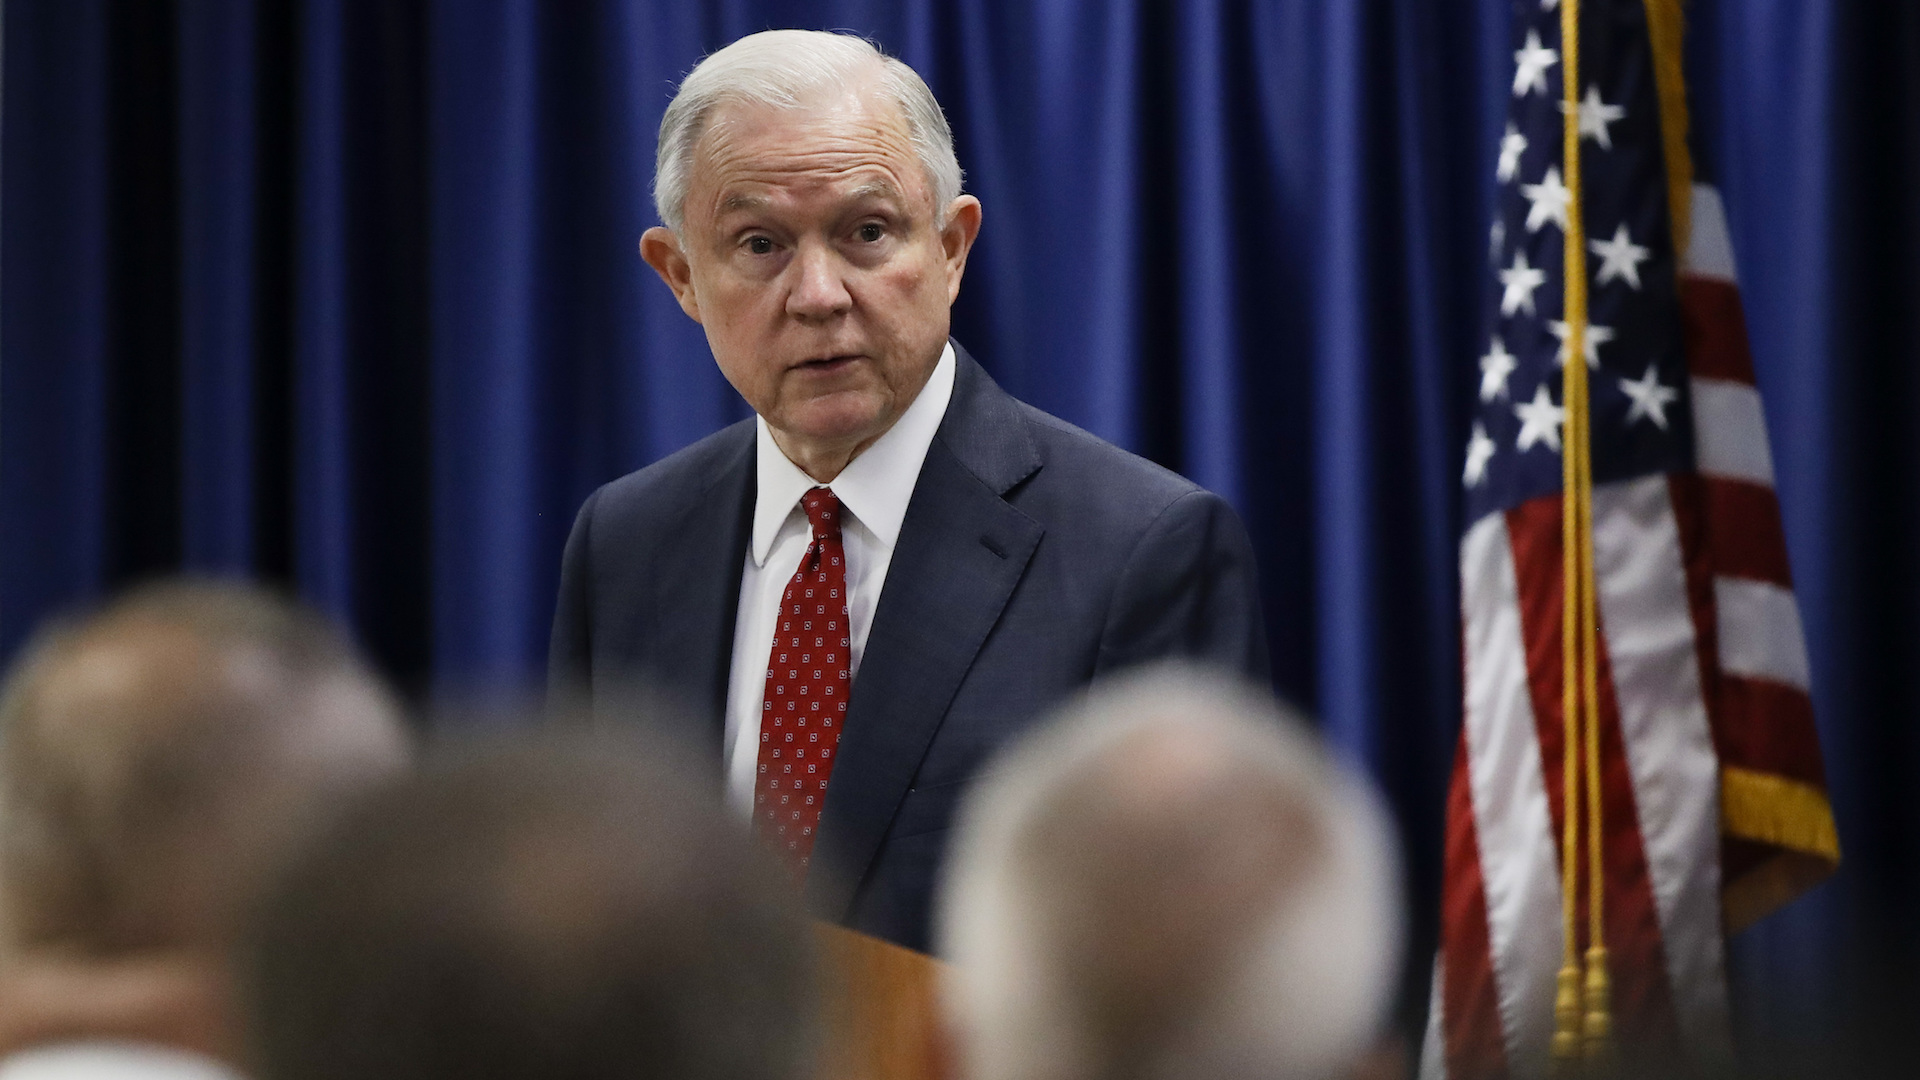 Sessions discussed Trump campaign-related matters with Russian ambassador, U.S. intelligence intercepts show